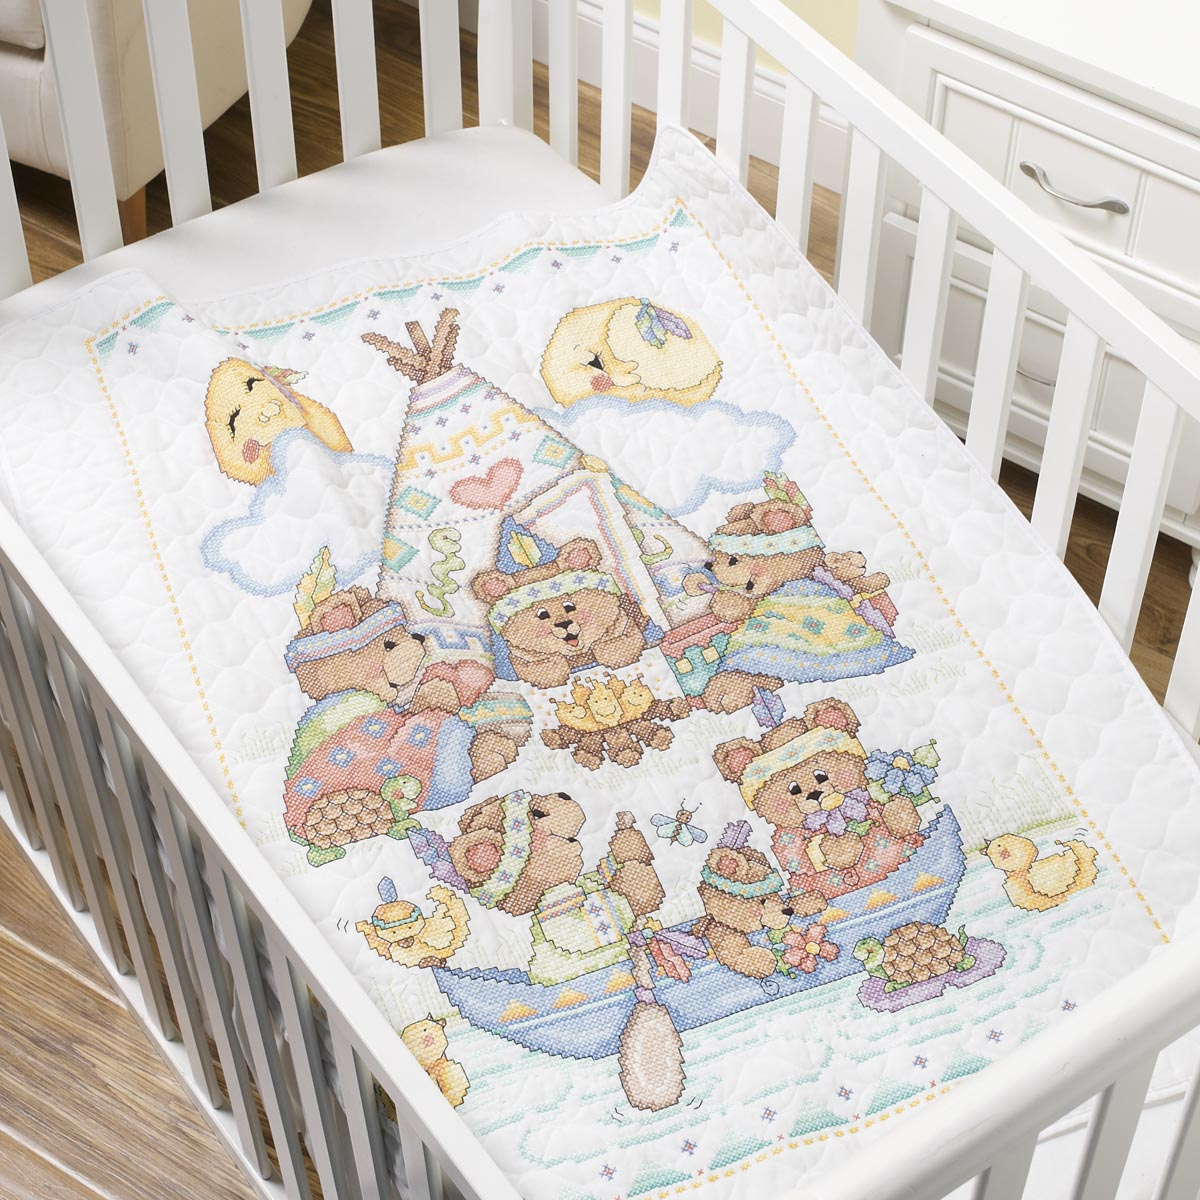 Bucilla Baby - Stamped Cross Stitch - Tee Pee Bears Crib Cover Kit